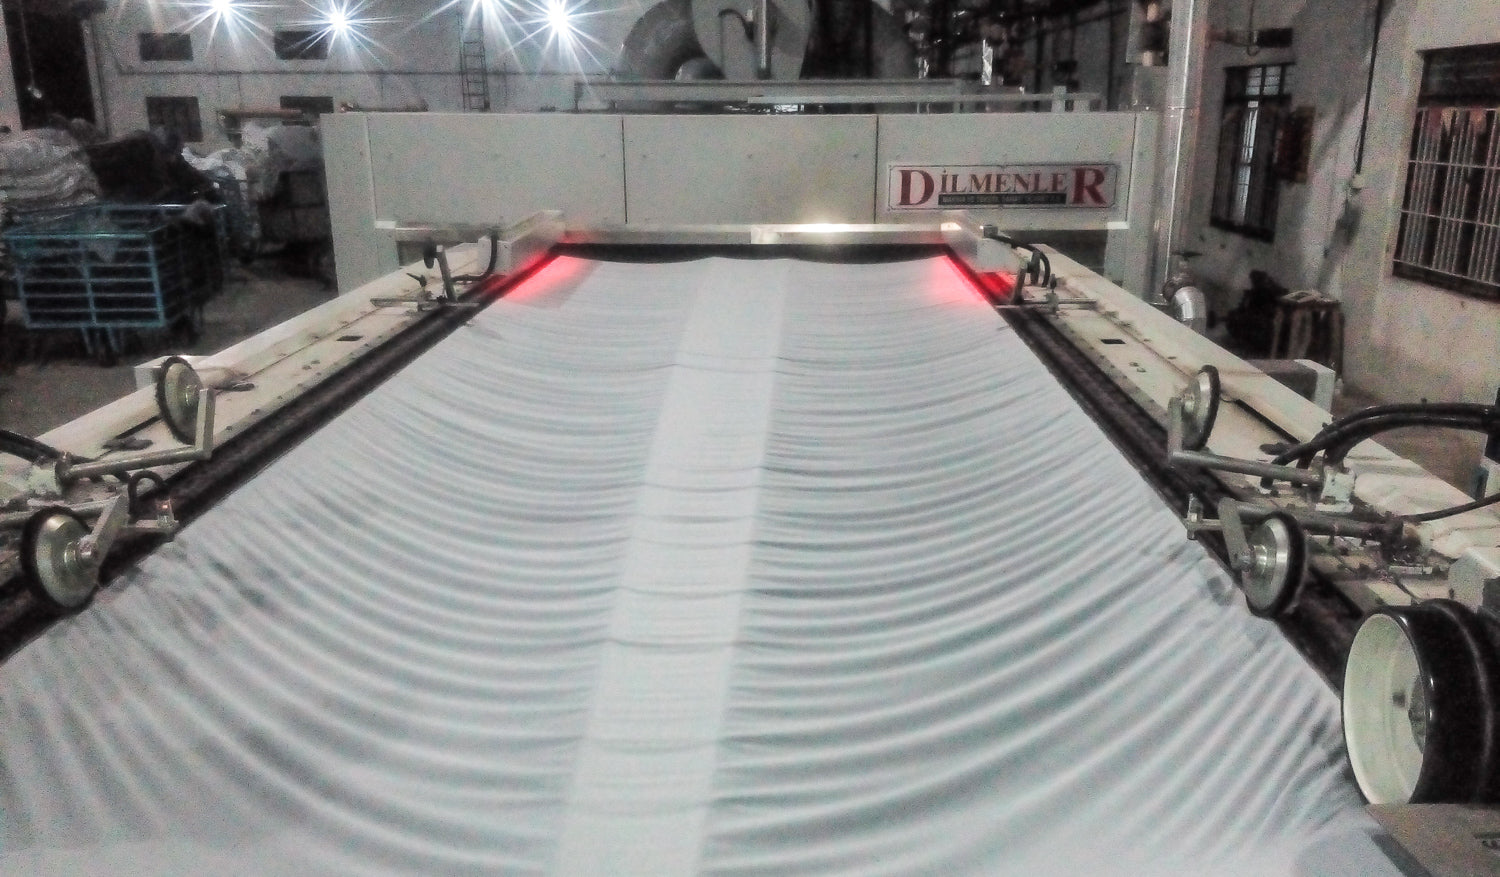 Preparing fabric for production